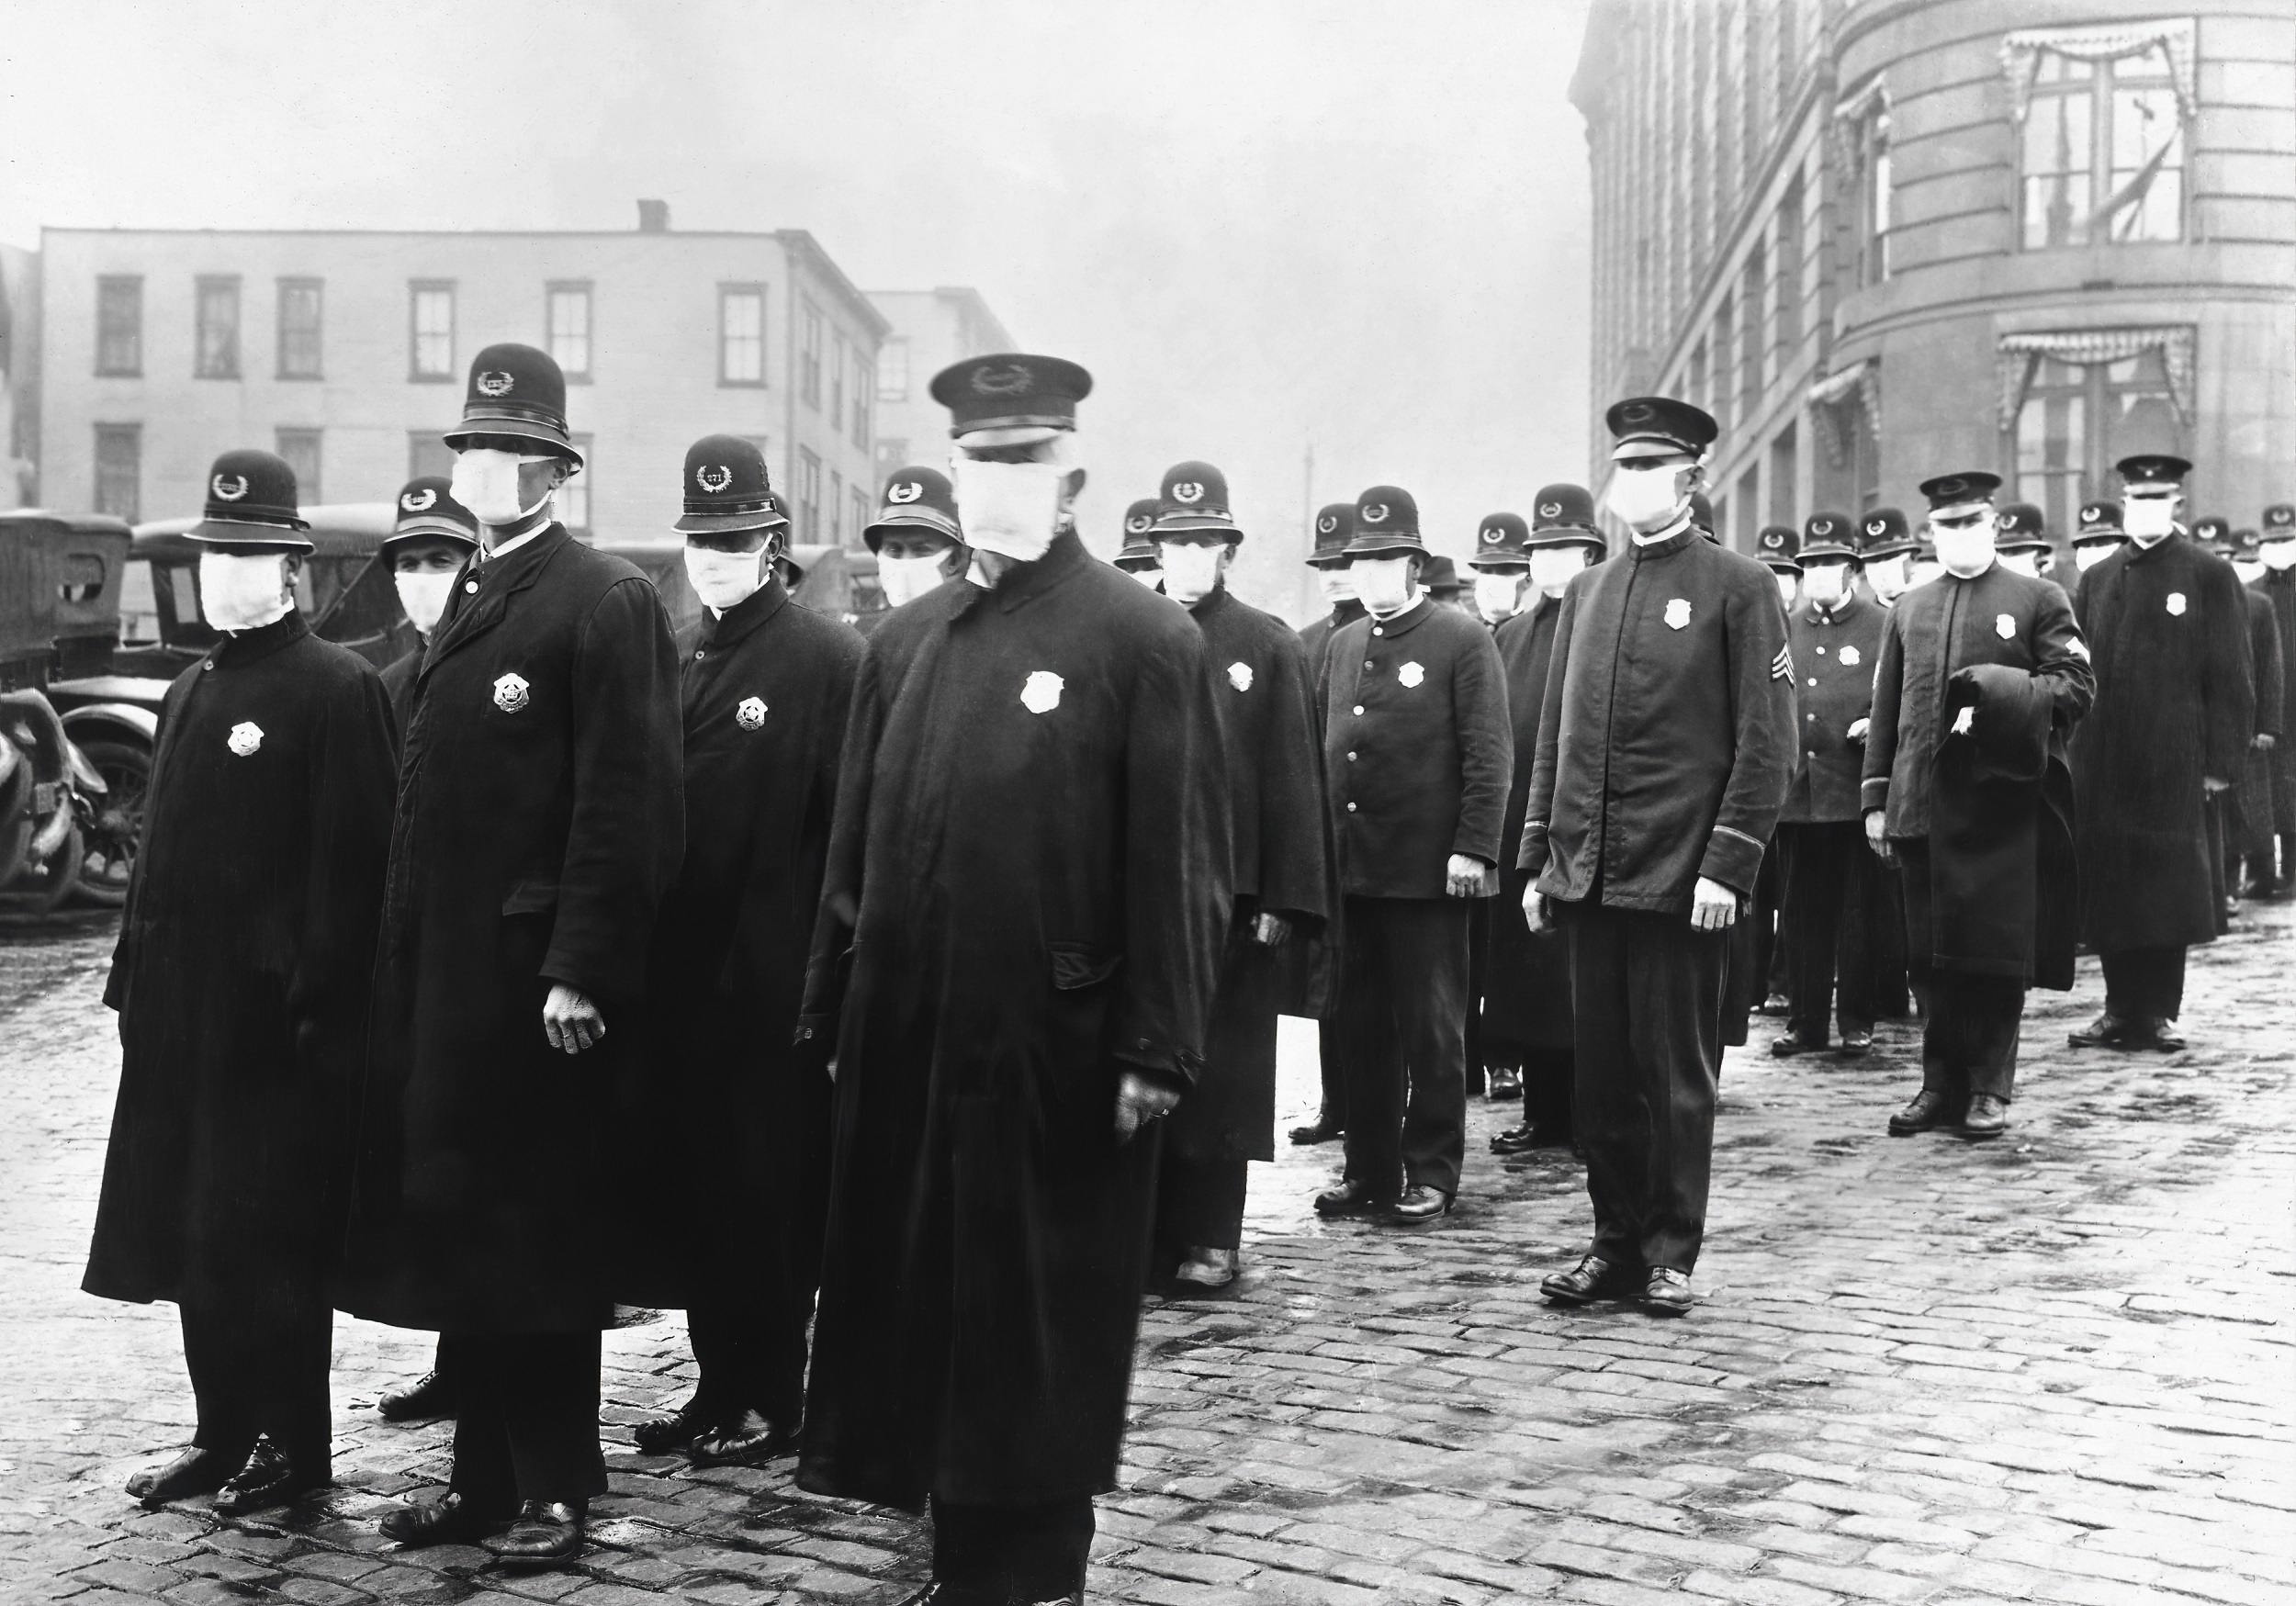 Spanish Flu in US (Von File:165-WW-269B-25-police-l.jpg, Gemeinfrei, https://commons.wikimedia.org/w/index.php?curid=88908241)